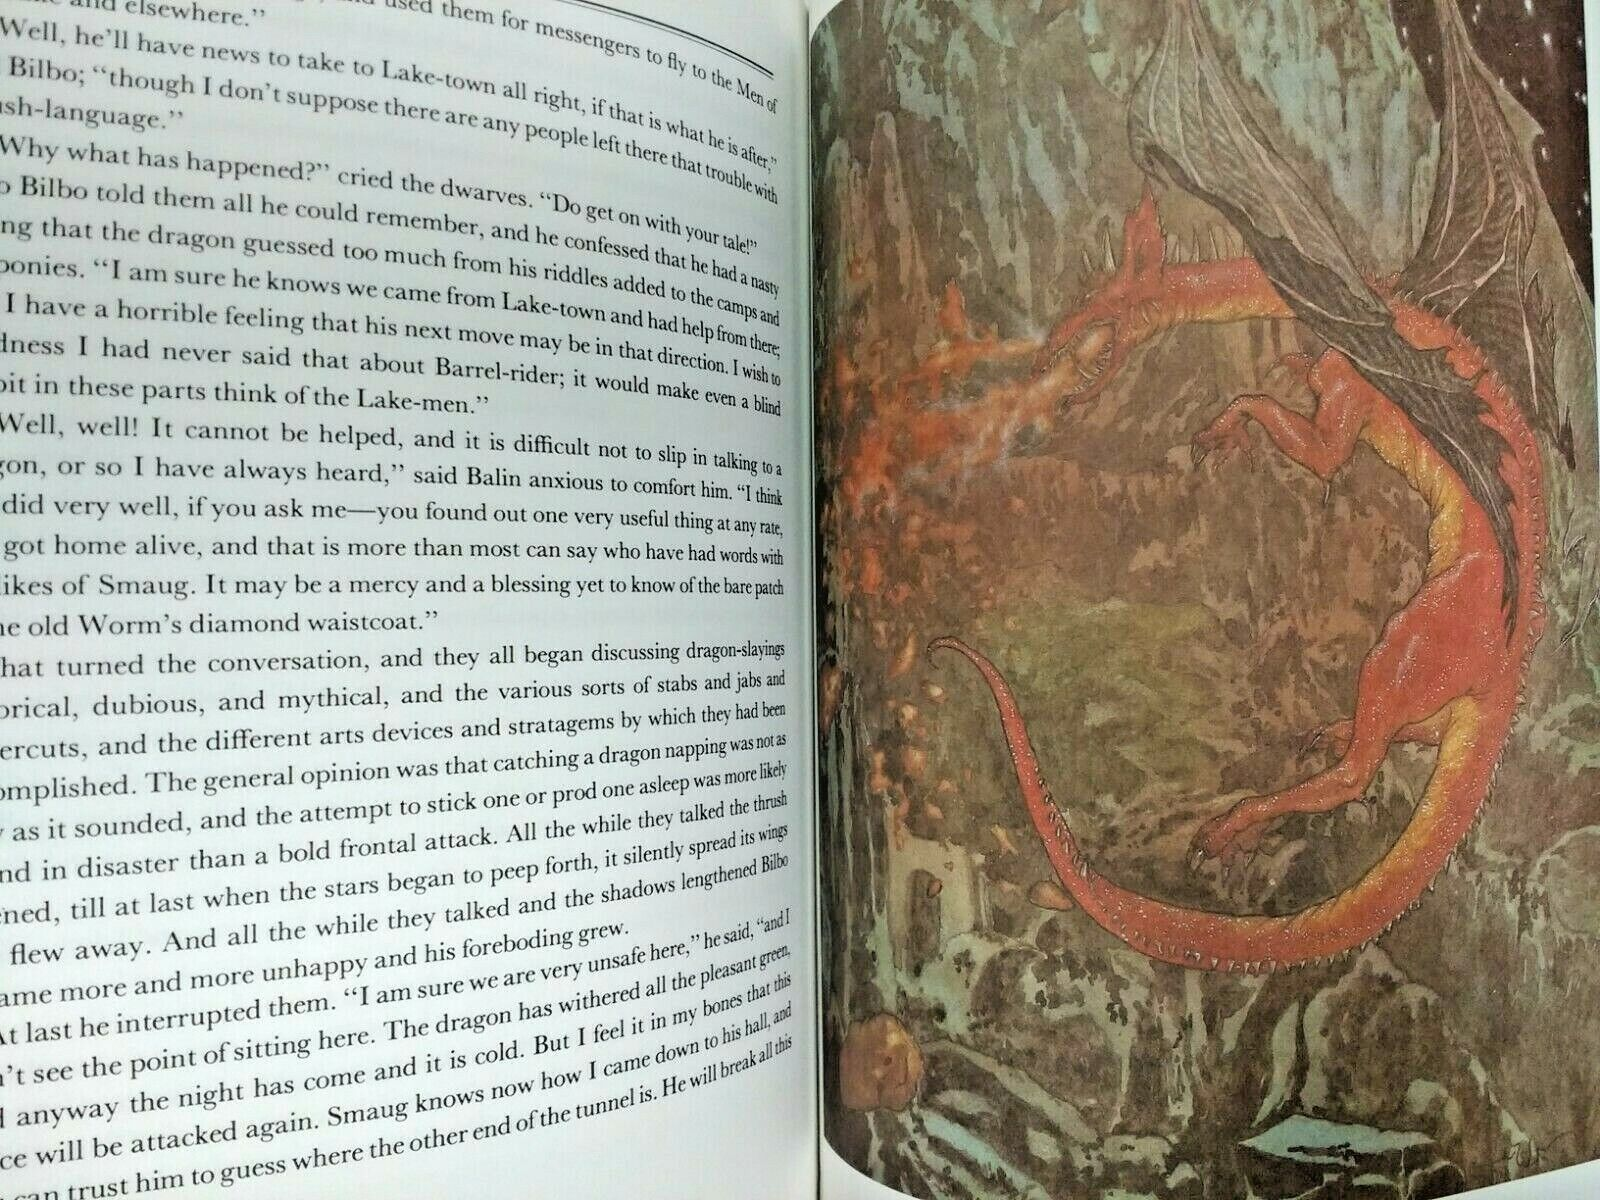 J.R.R. Tolkien The Hobbit Illustrated By Michael Hague Softcover - $18.00